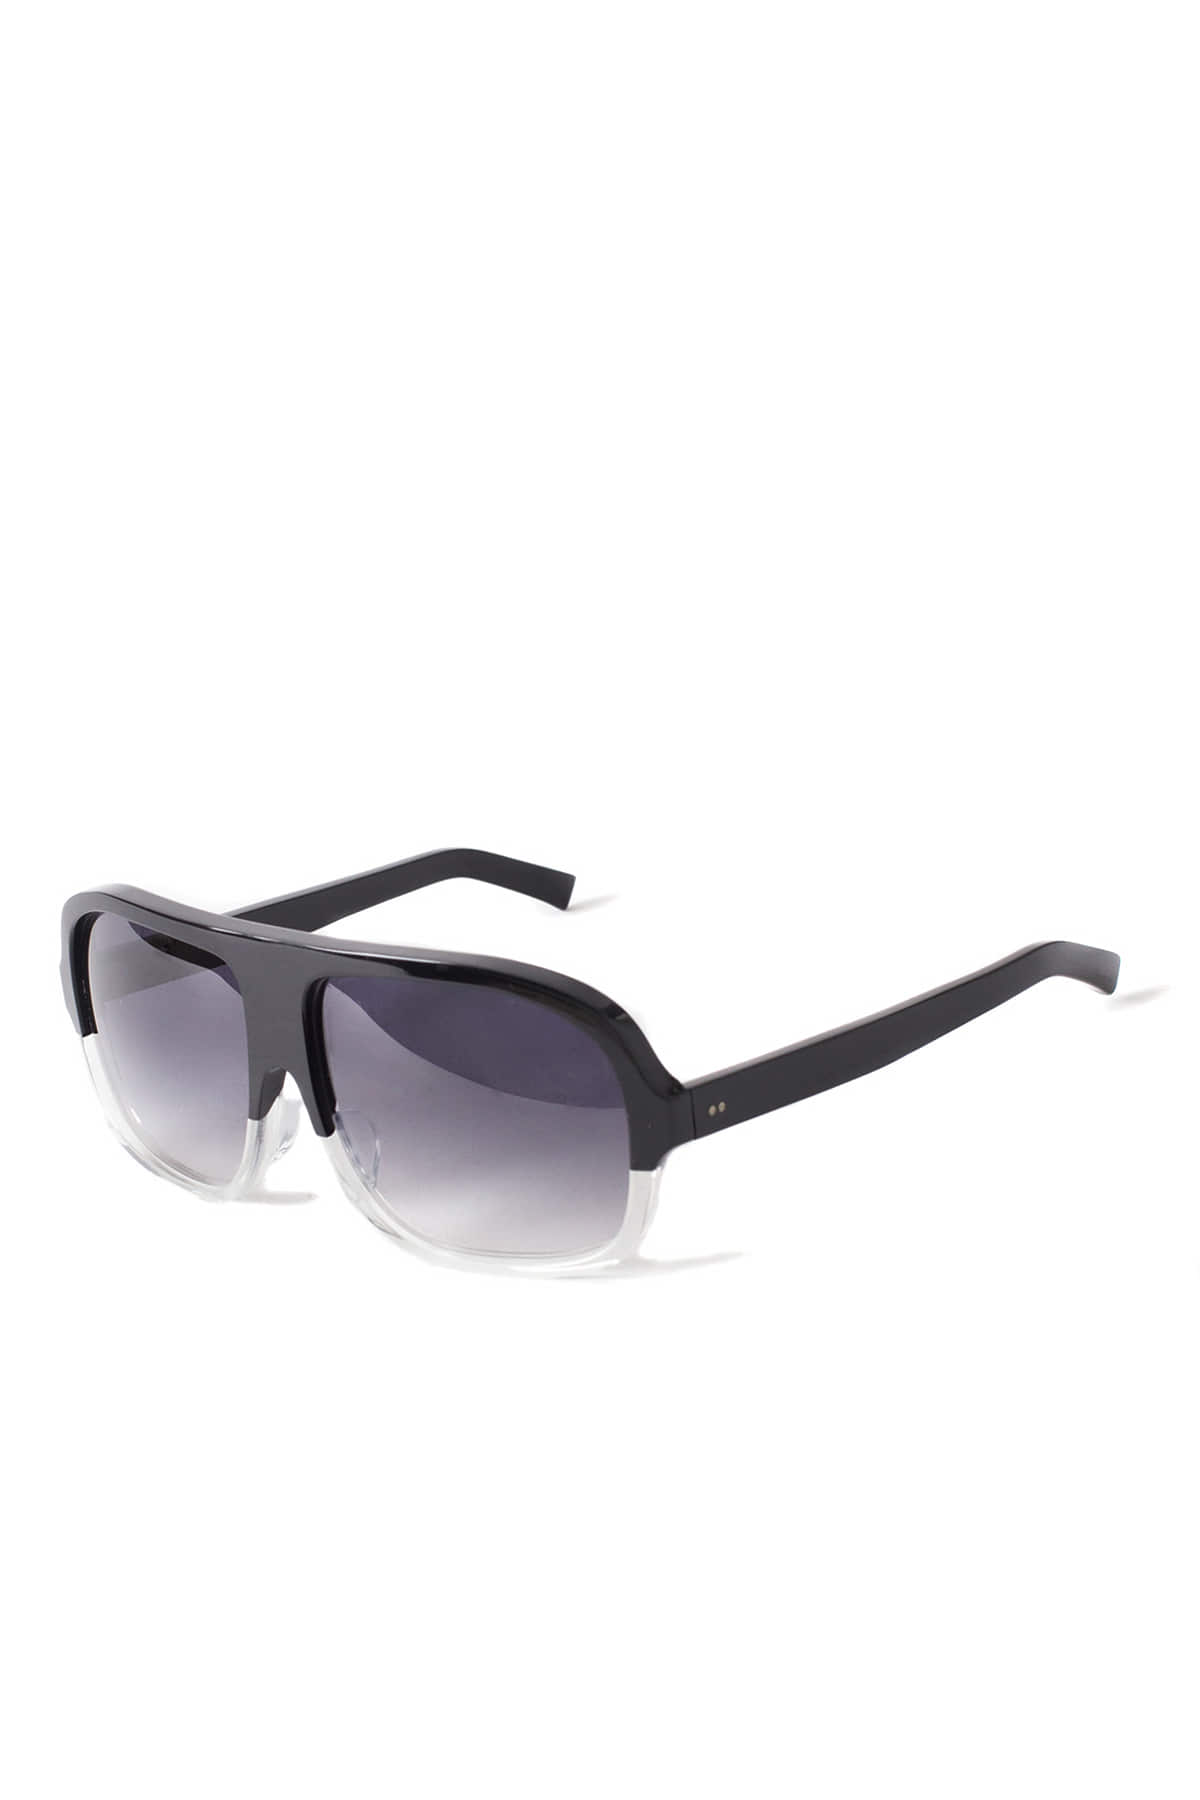 JOHN LAWRENCE SULLIVAN : Sunglasses (Black)